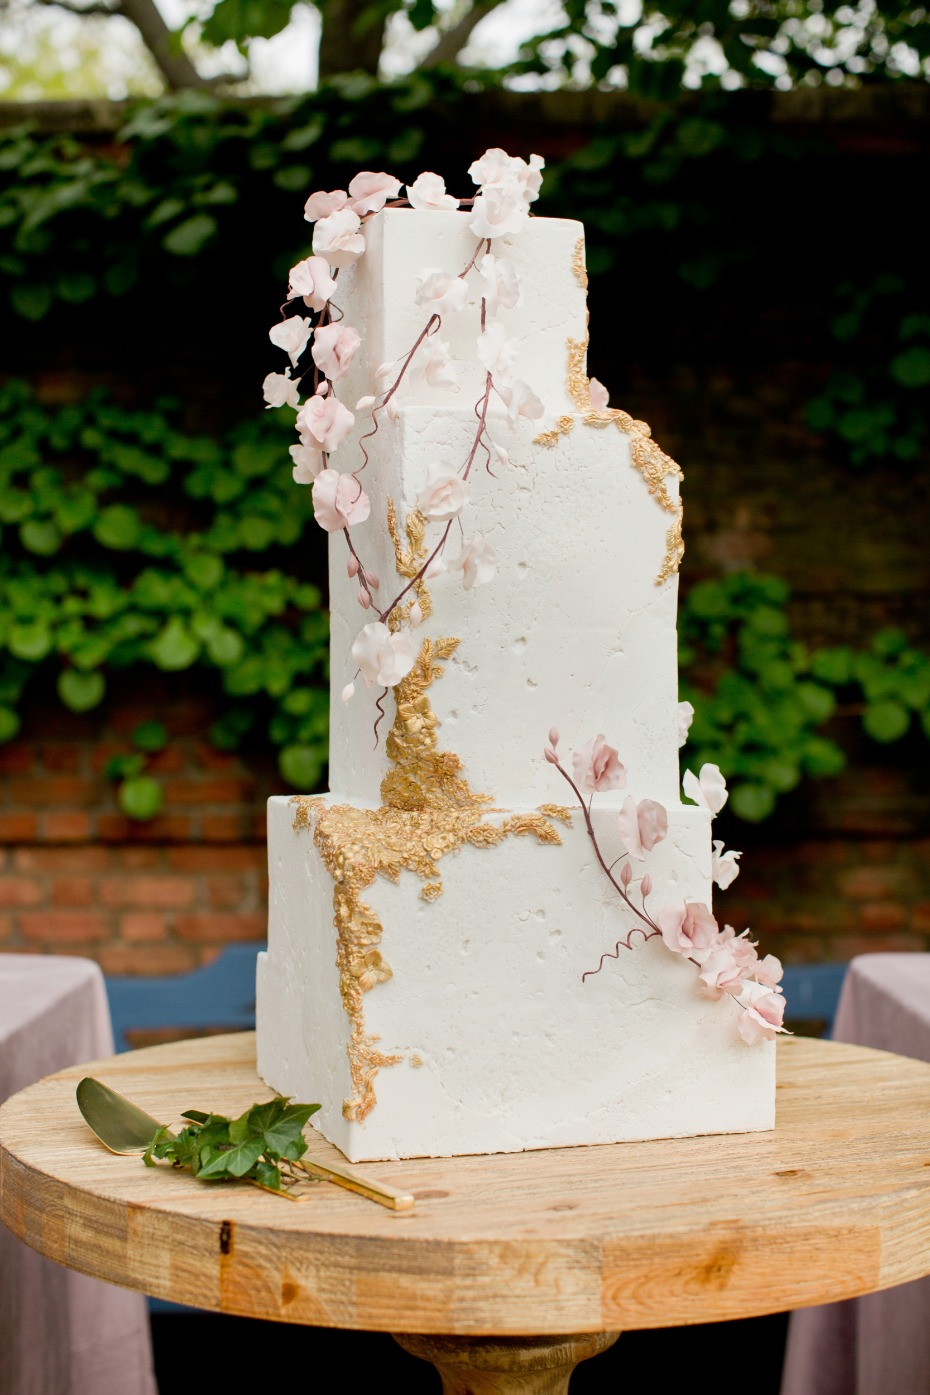 Asymmetrical wedding cake with aged rough stone fondant